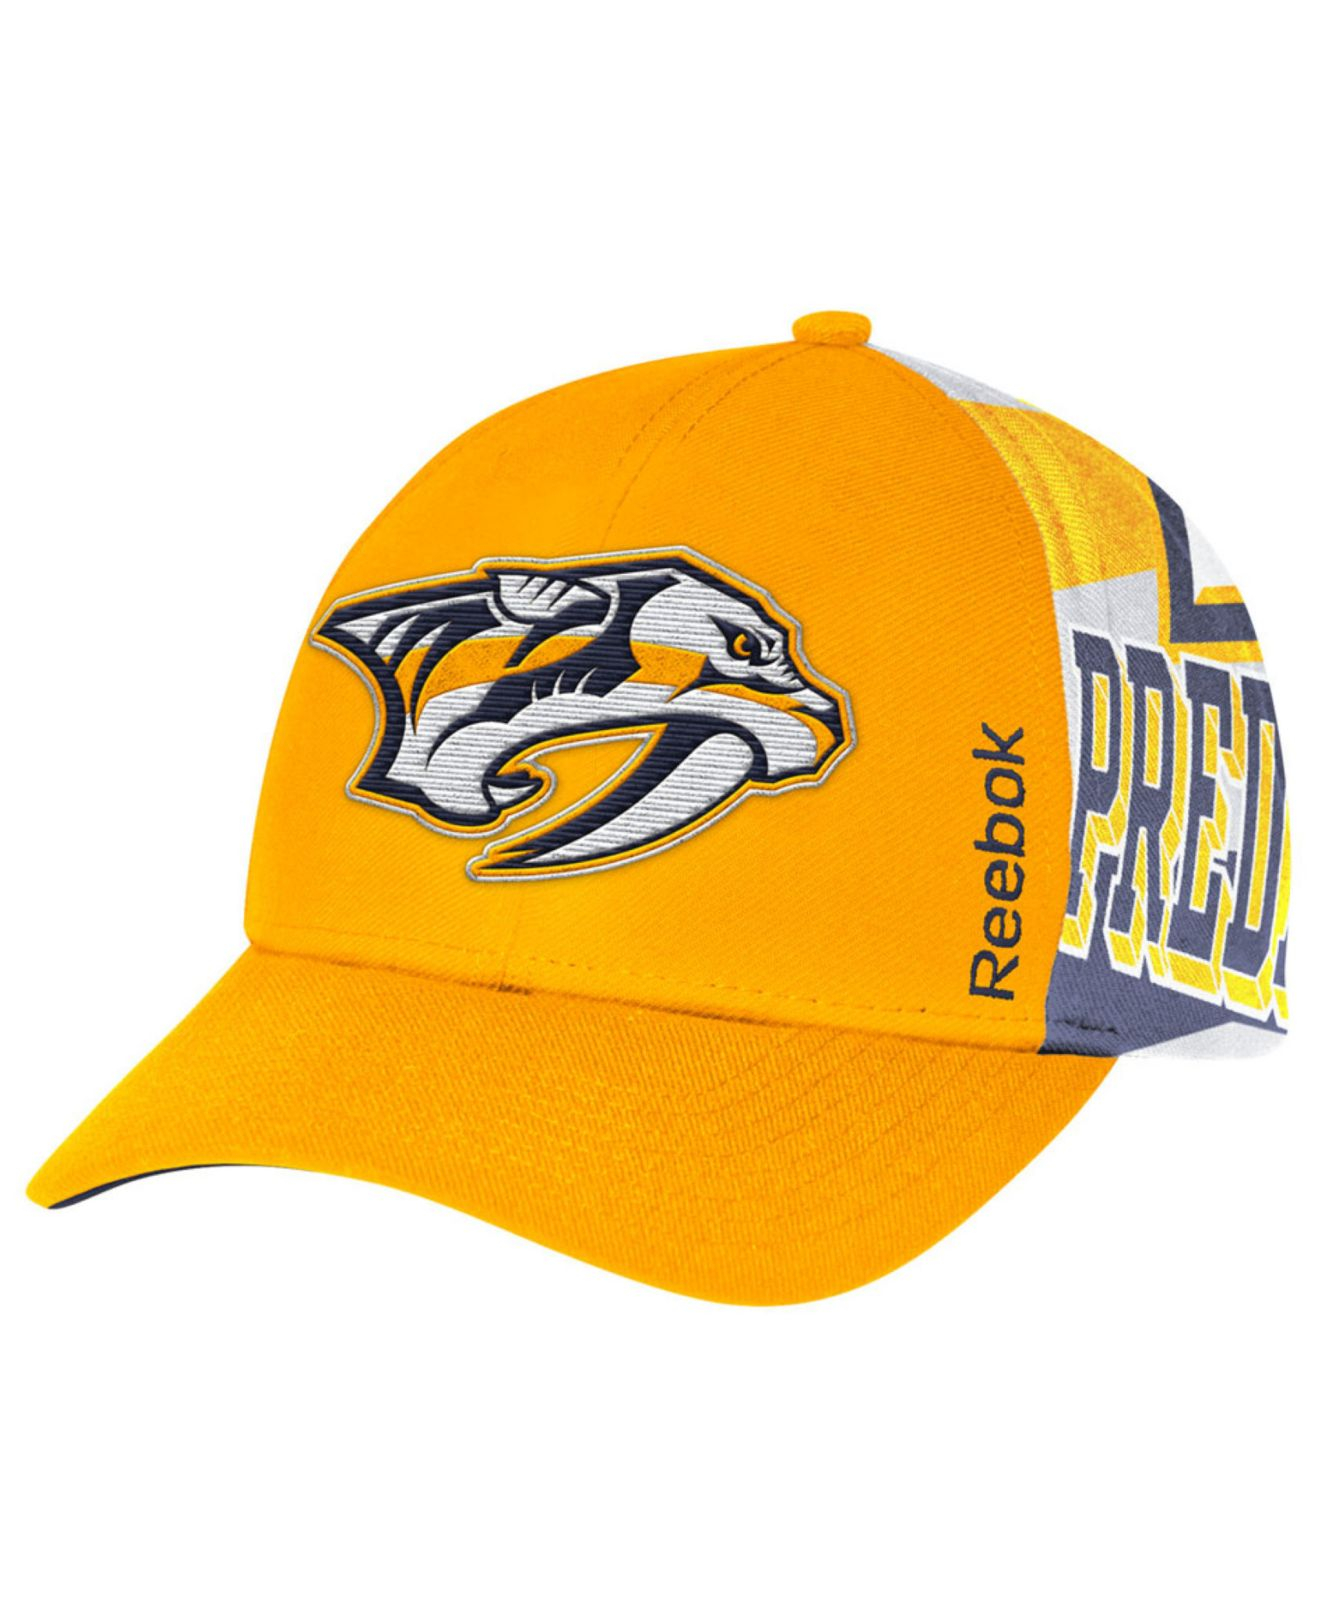 35dd01f5687 Lyst - Reebok Kids  Nashville Predators Playoff Cap in Orange